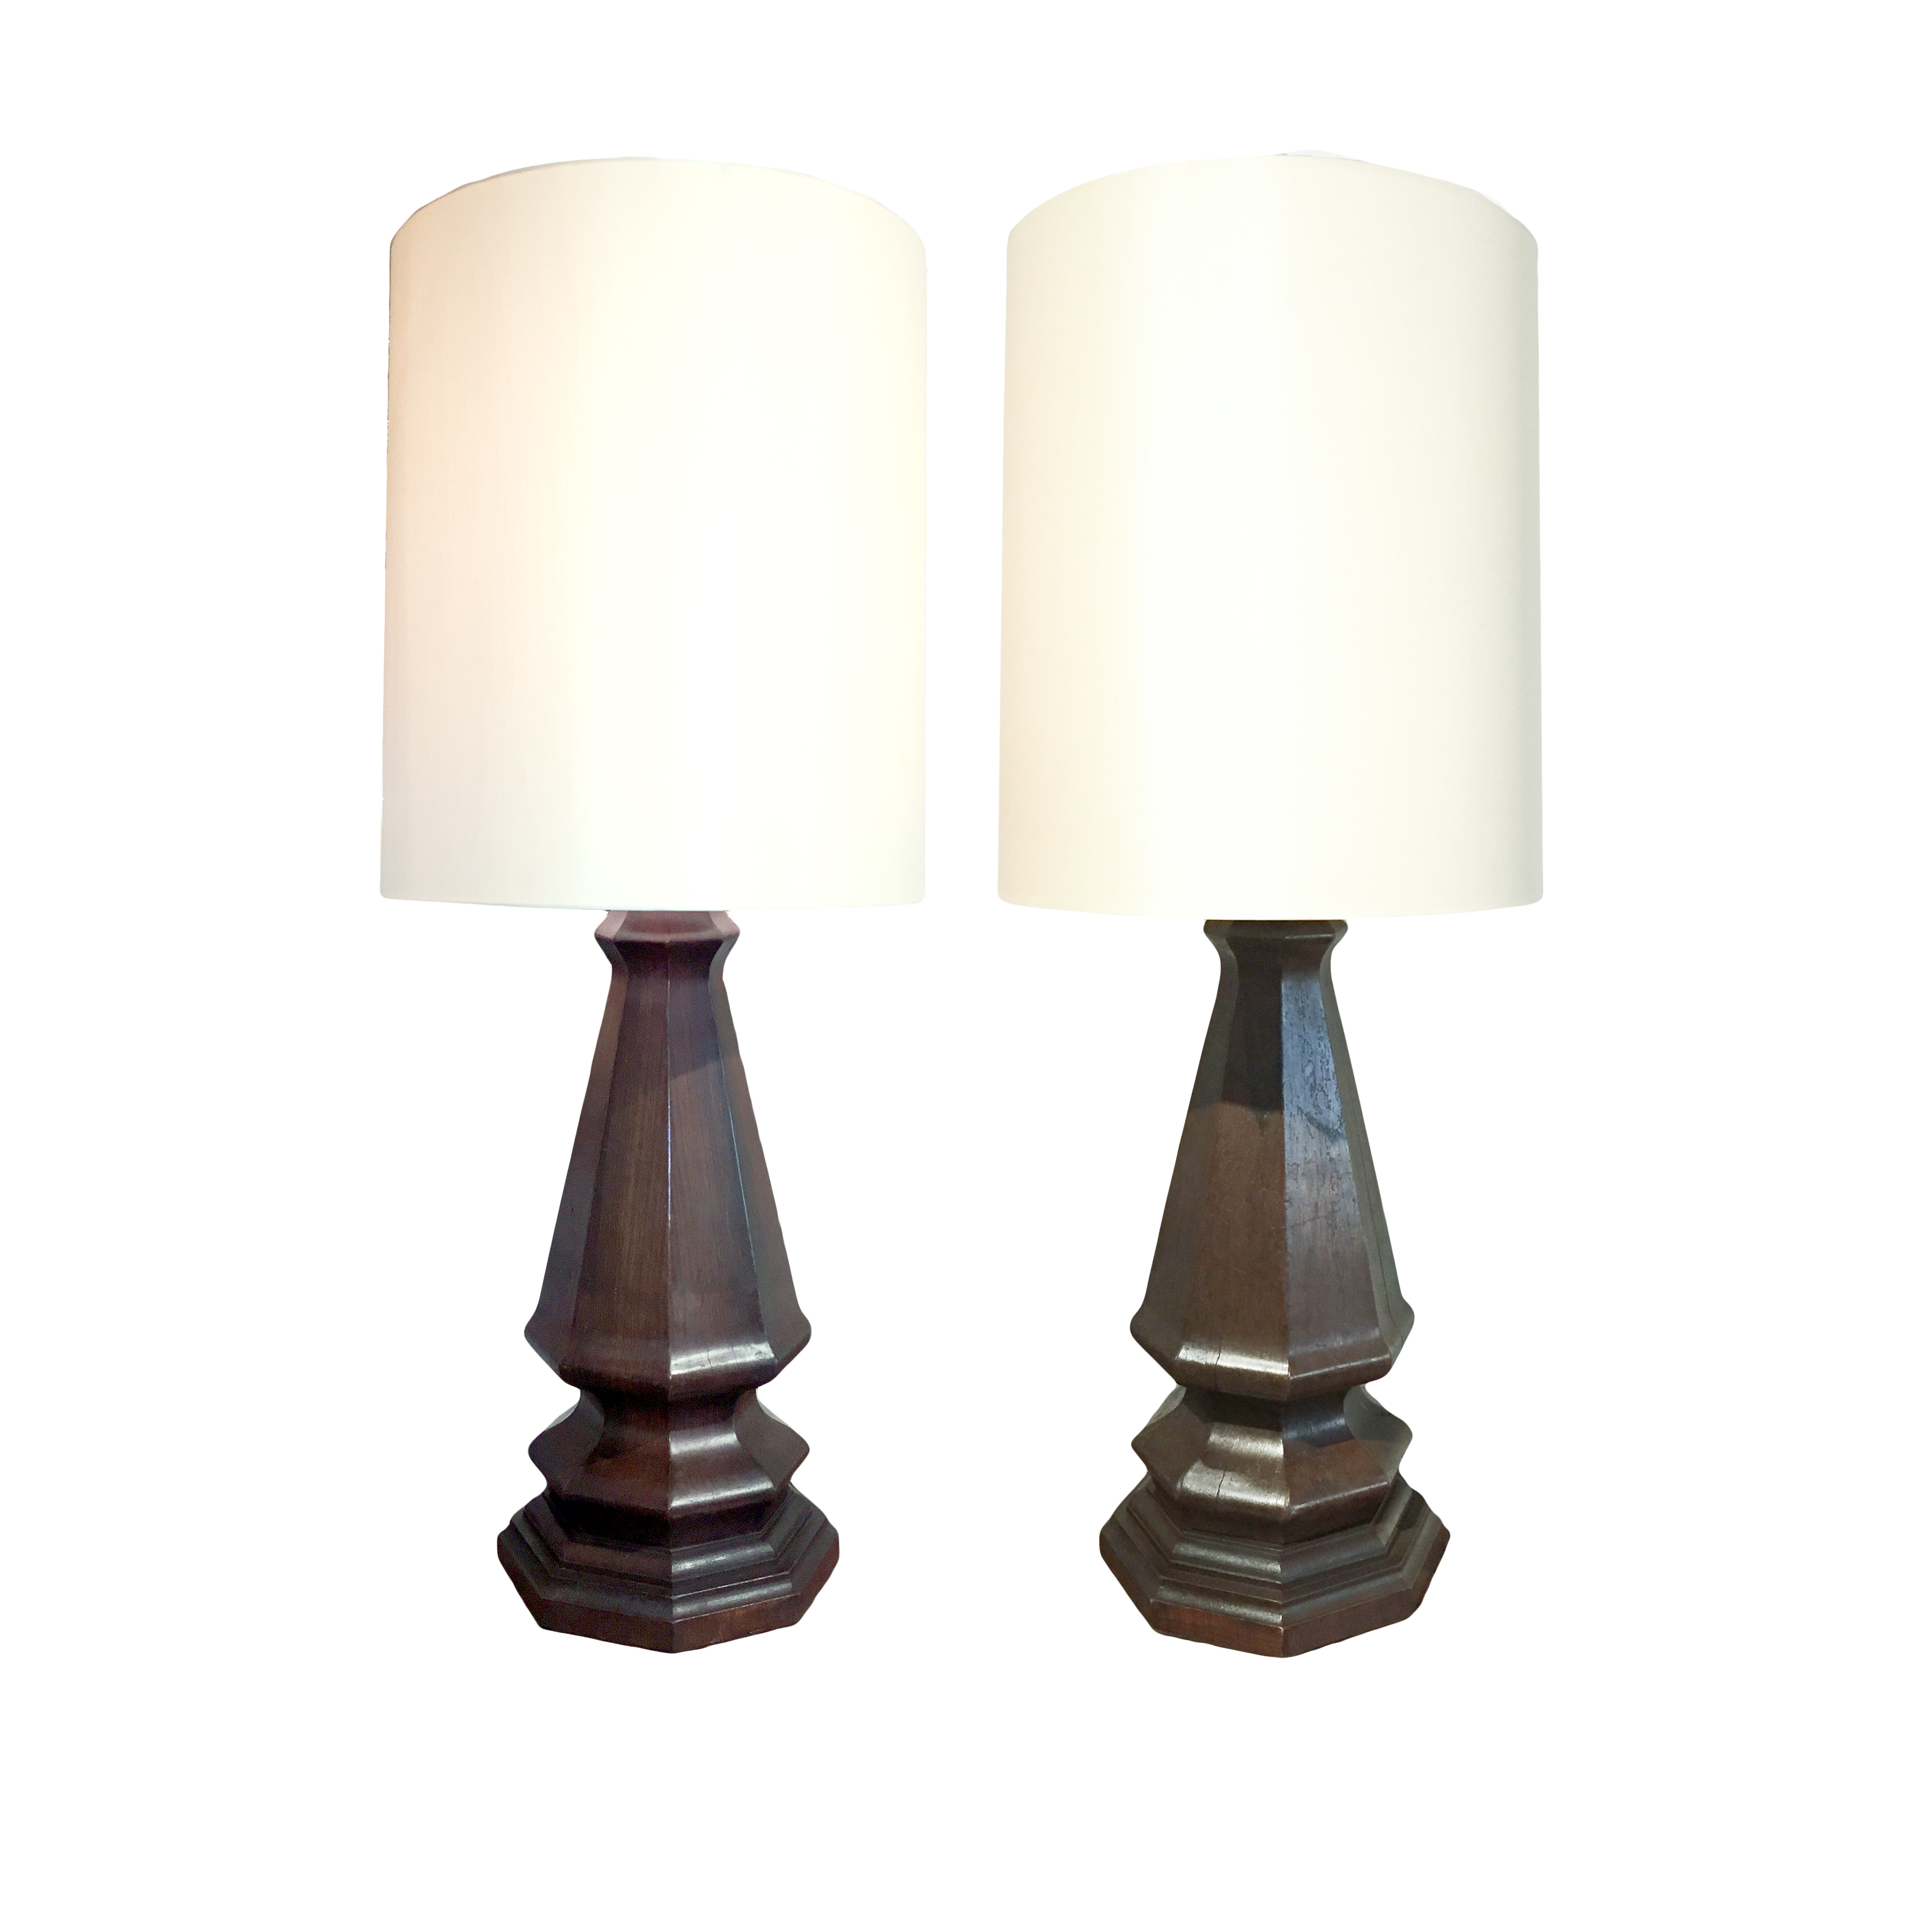 pair of large scale wooden table lamps english circa 1900 garden court ant. Black Bedroom Furniture Sets. Home Design Ideas